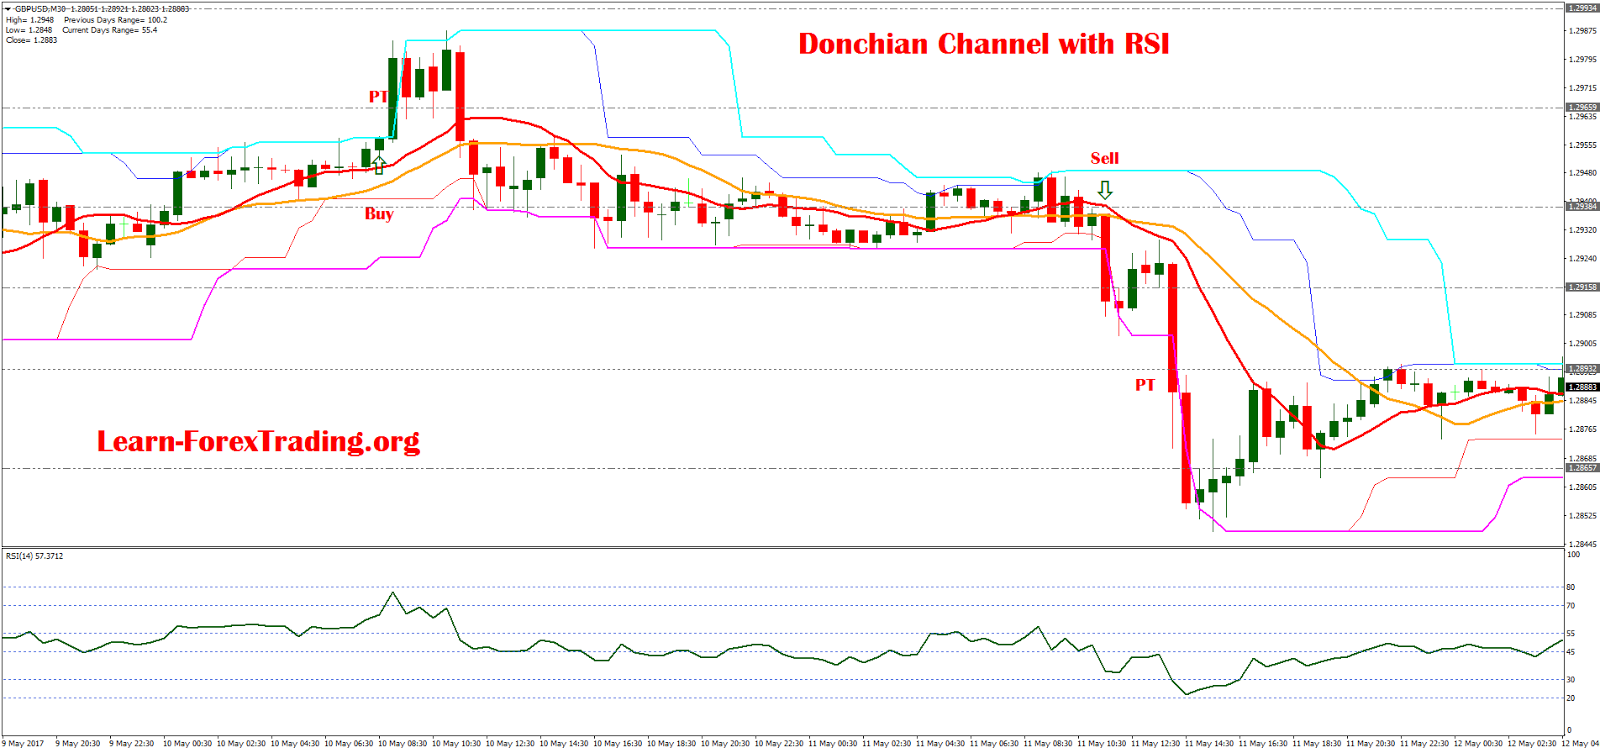 Trading forex with donchian channels